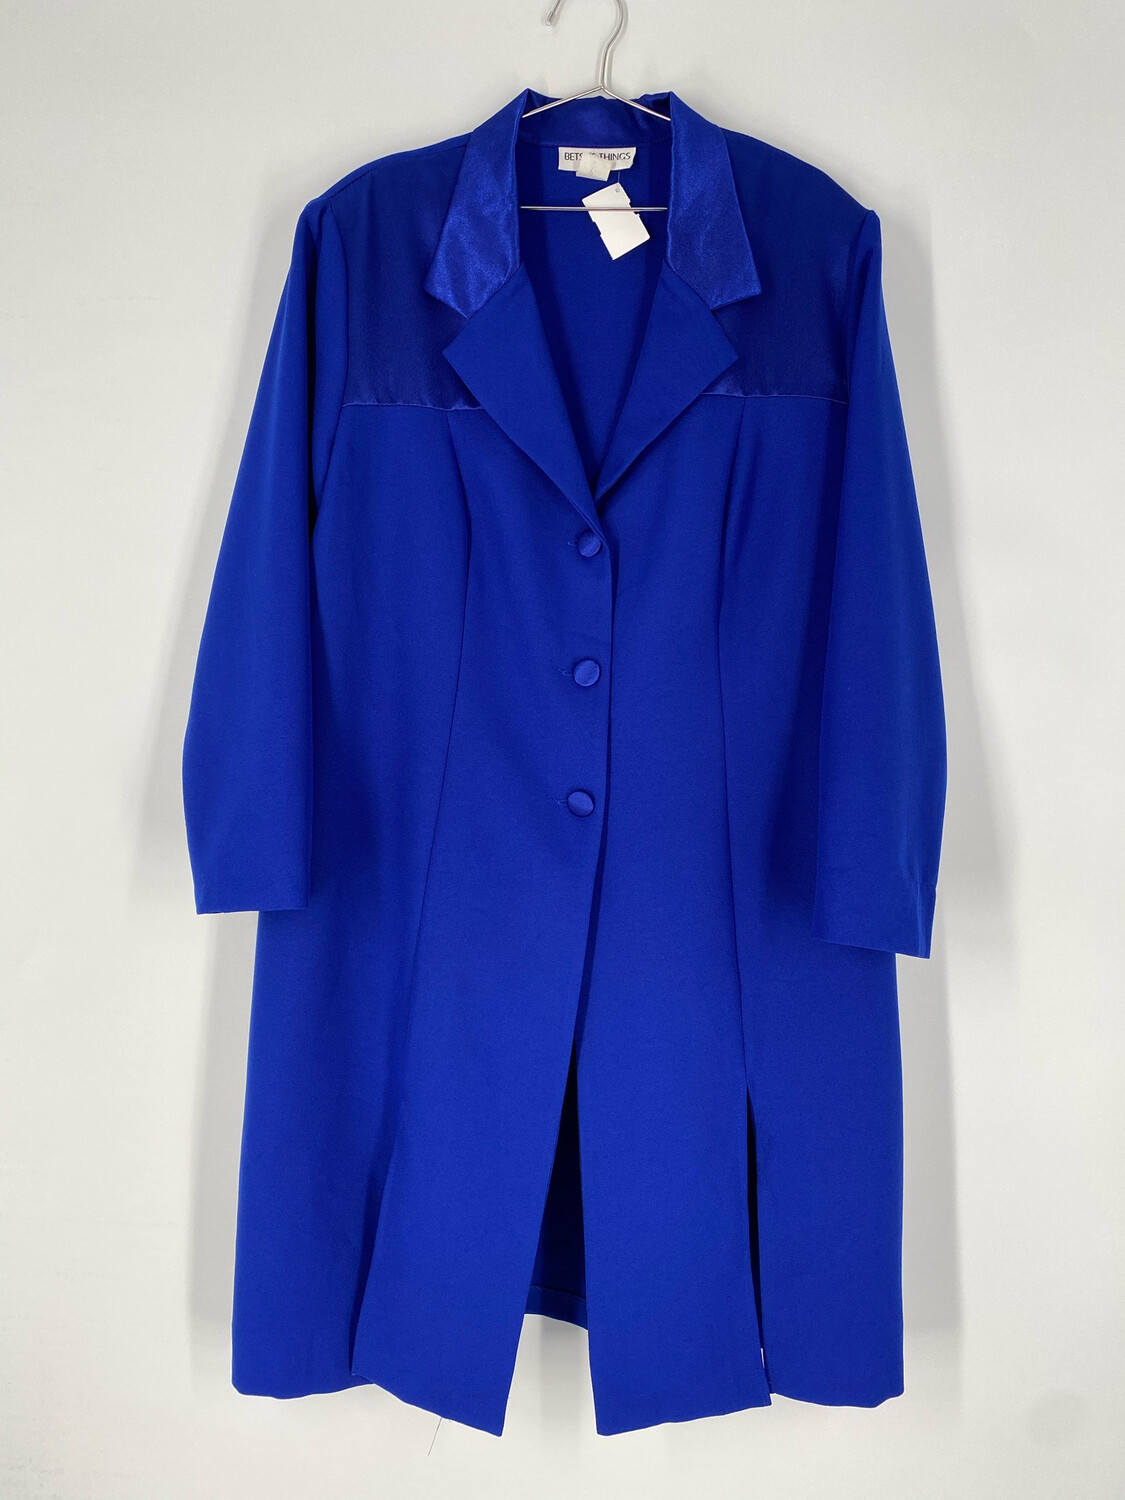 Betsy's Things Blazer Dress With Front Slits Size L